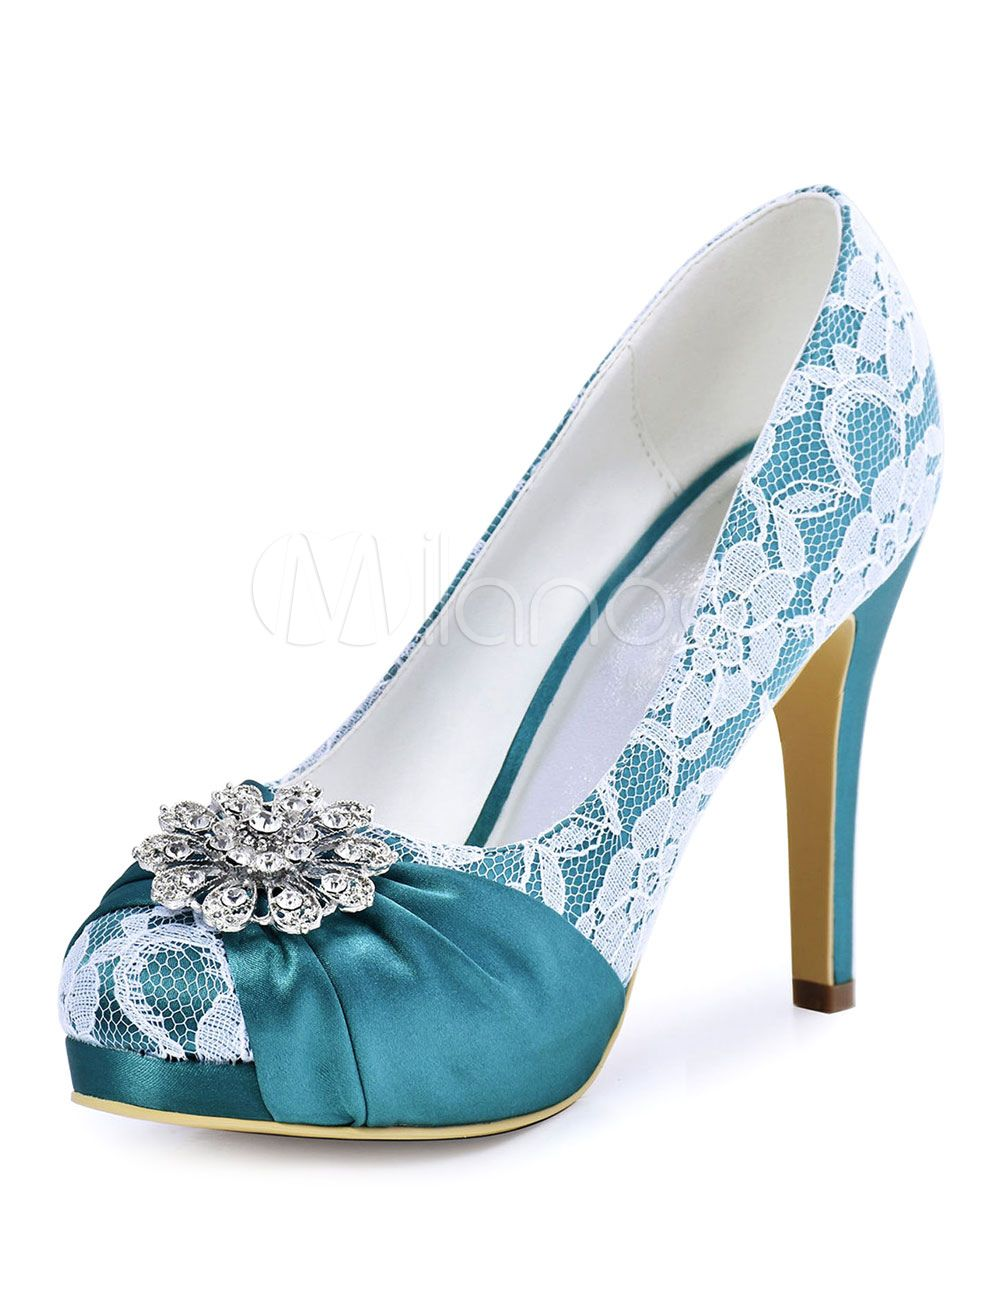 5c82c9987e1 Women's Bridal Shoes Teal Round Toe Rhinestones Slip On High Heel ...